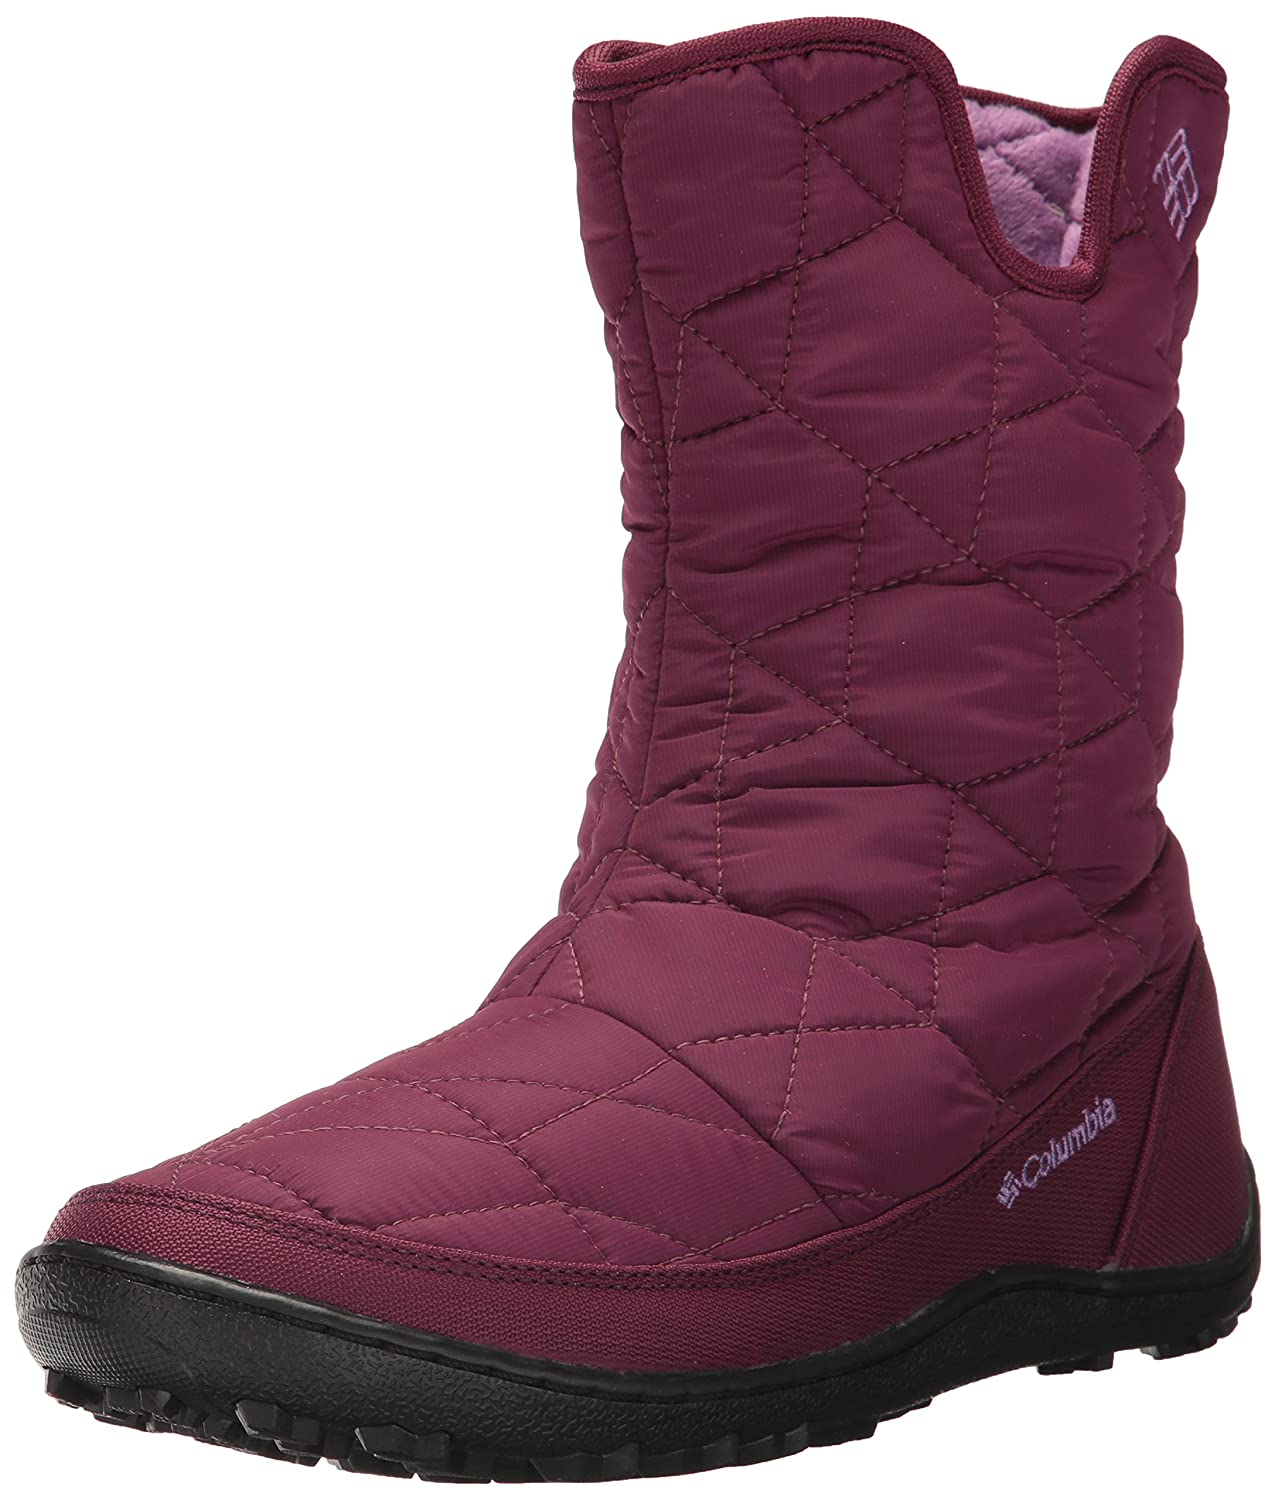 Columbia Women's Minx Slip Ii Omni-Heat Snow Boot B01N362RD8 9 B(M) US|Dark Raspberry, Northern Lights